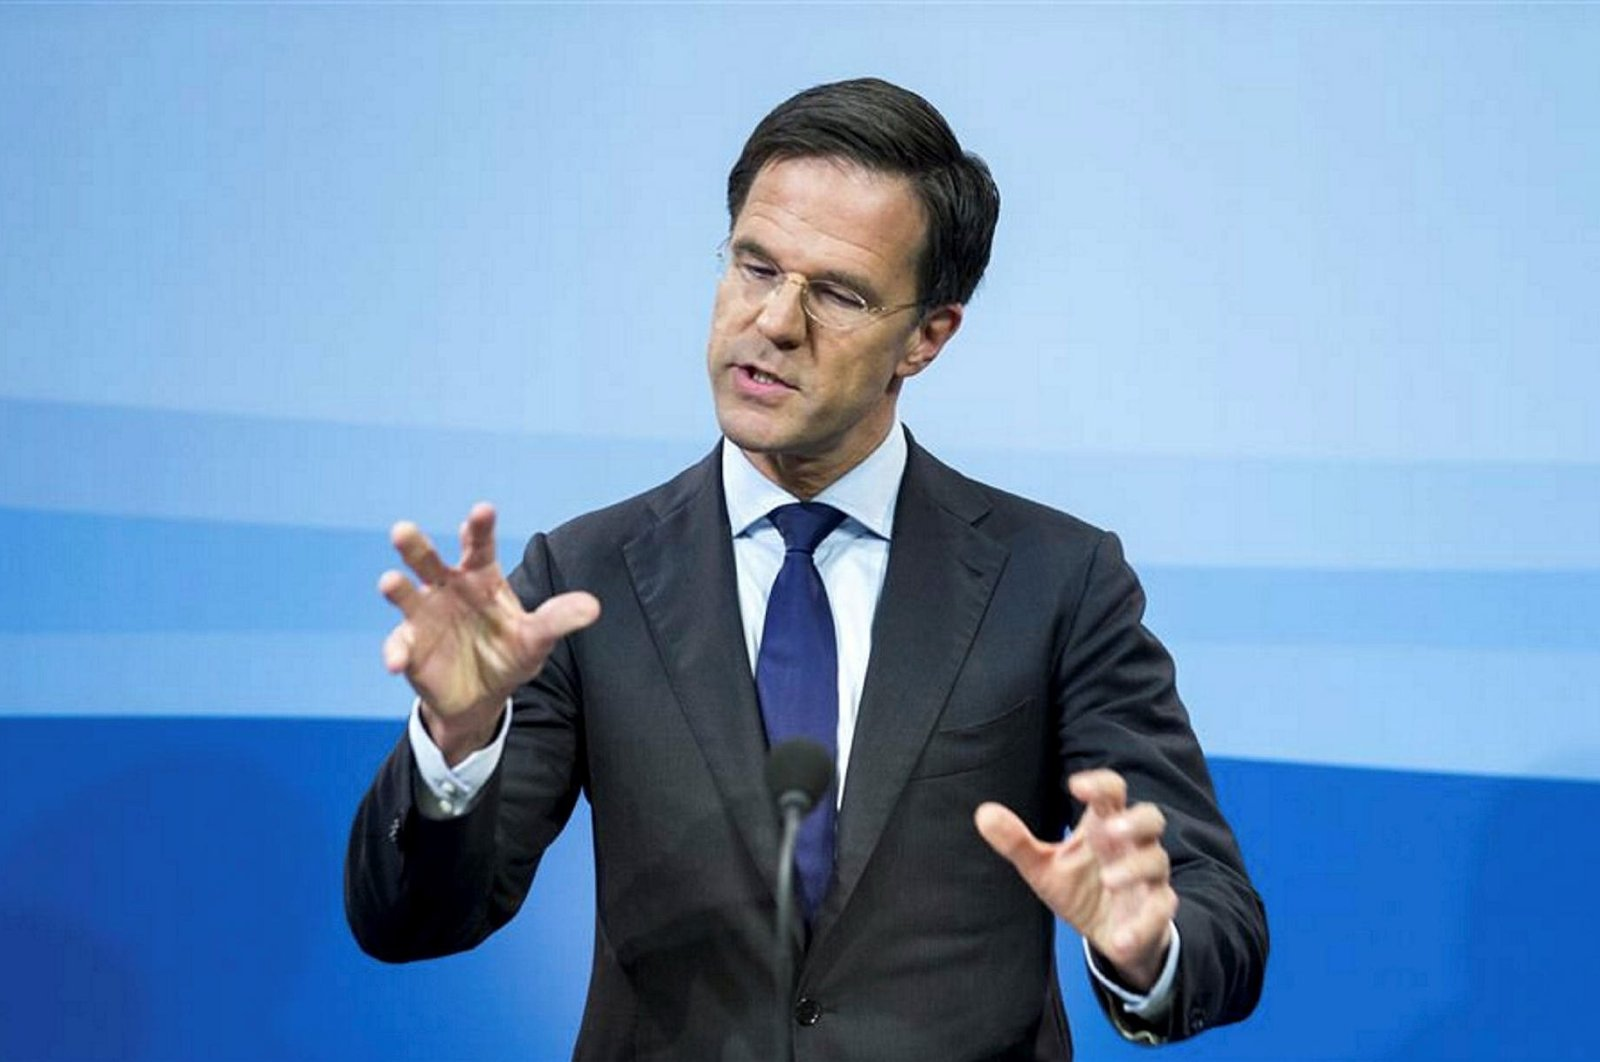 Dutch Prime Minister Mark Rutte during a news conference after a Cabinet meeting in The Hague, Netherlands, Jan. 29, 2016. (AP Photo)